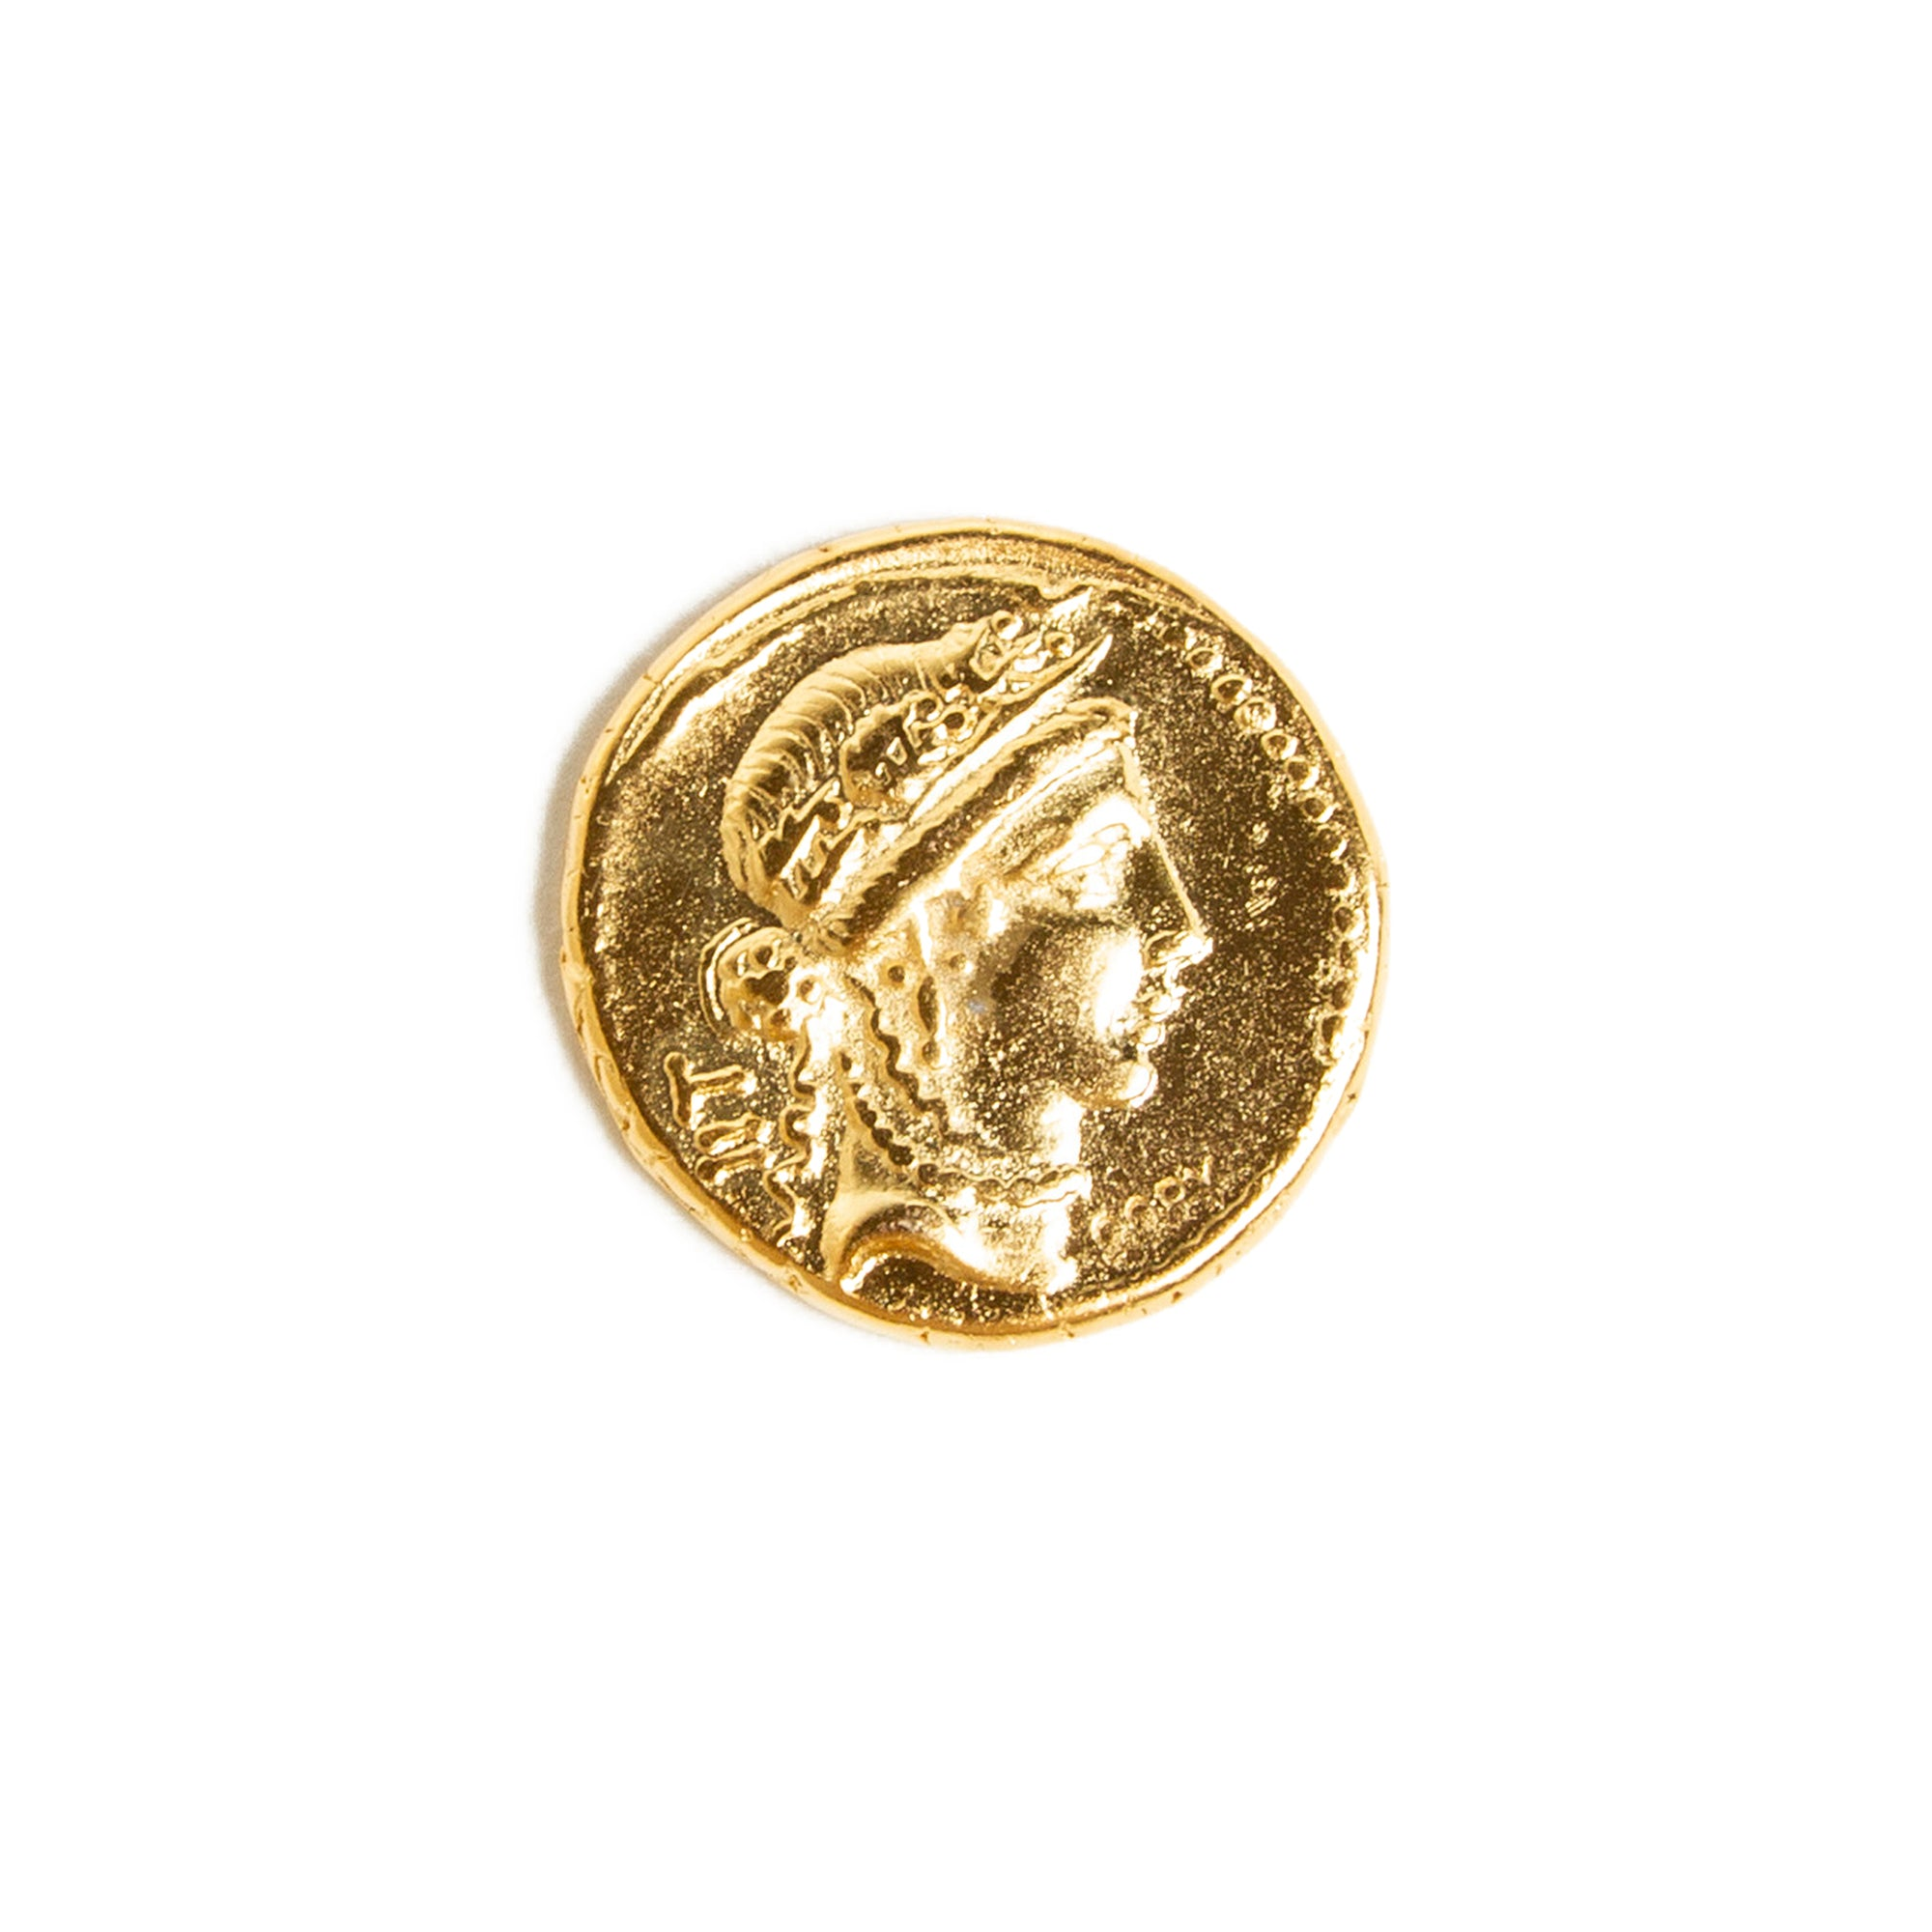 Roman Coin Reproduction - Caesar's Conquest of Gaul | Getty Store